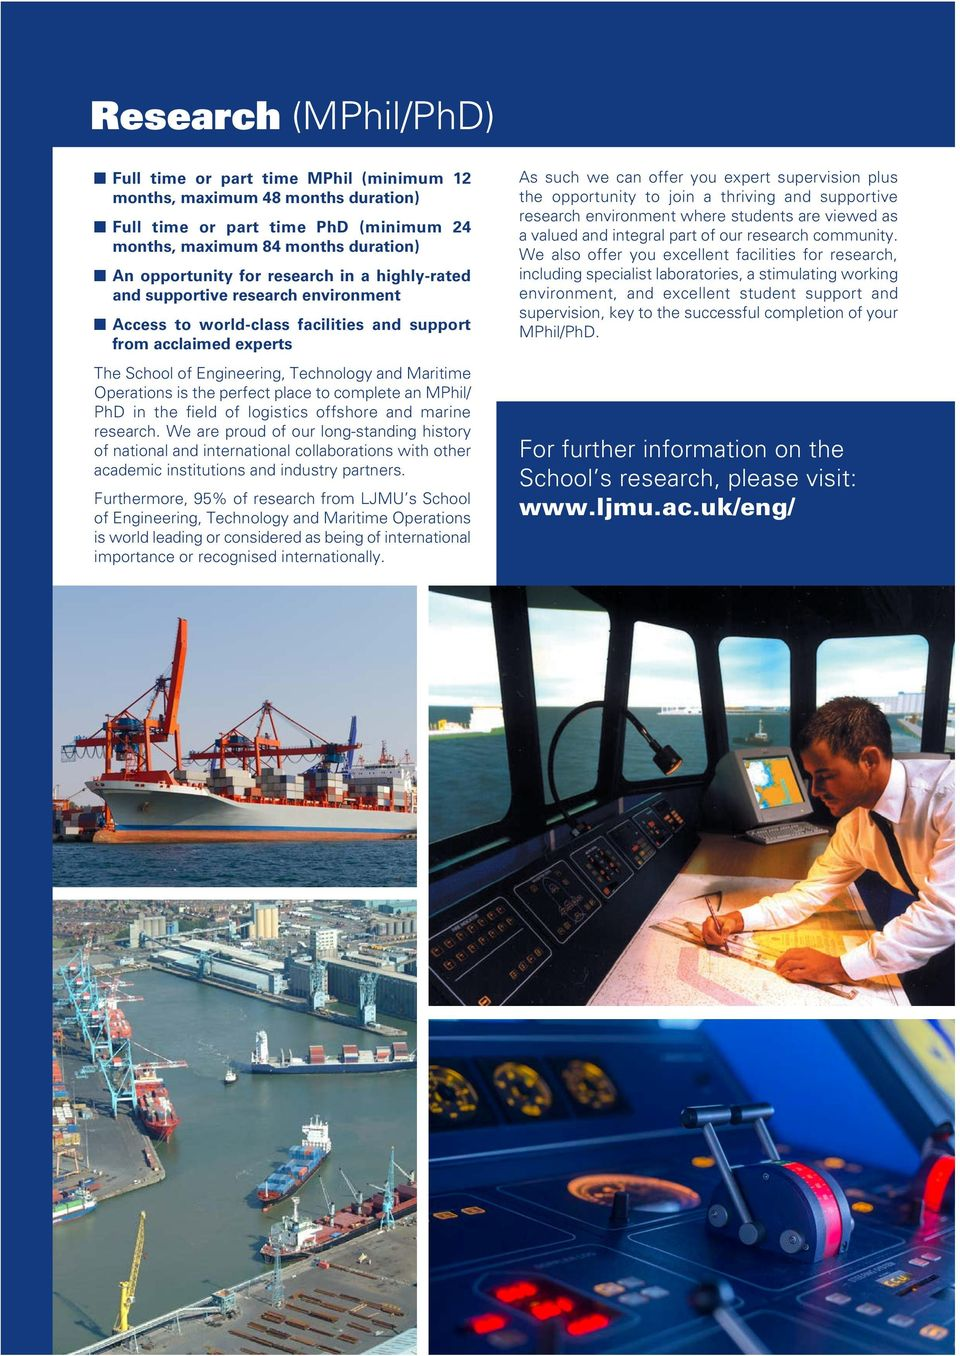 the perfect place to complete an MPhil/ PhD in the field of logistics offshore and marine research.